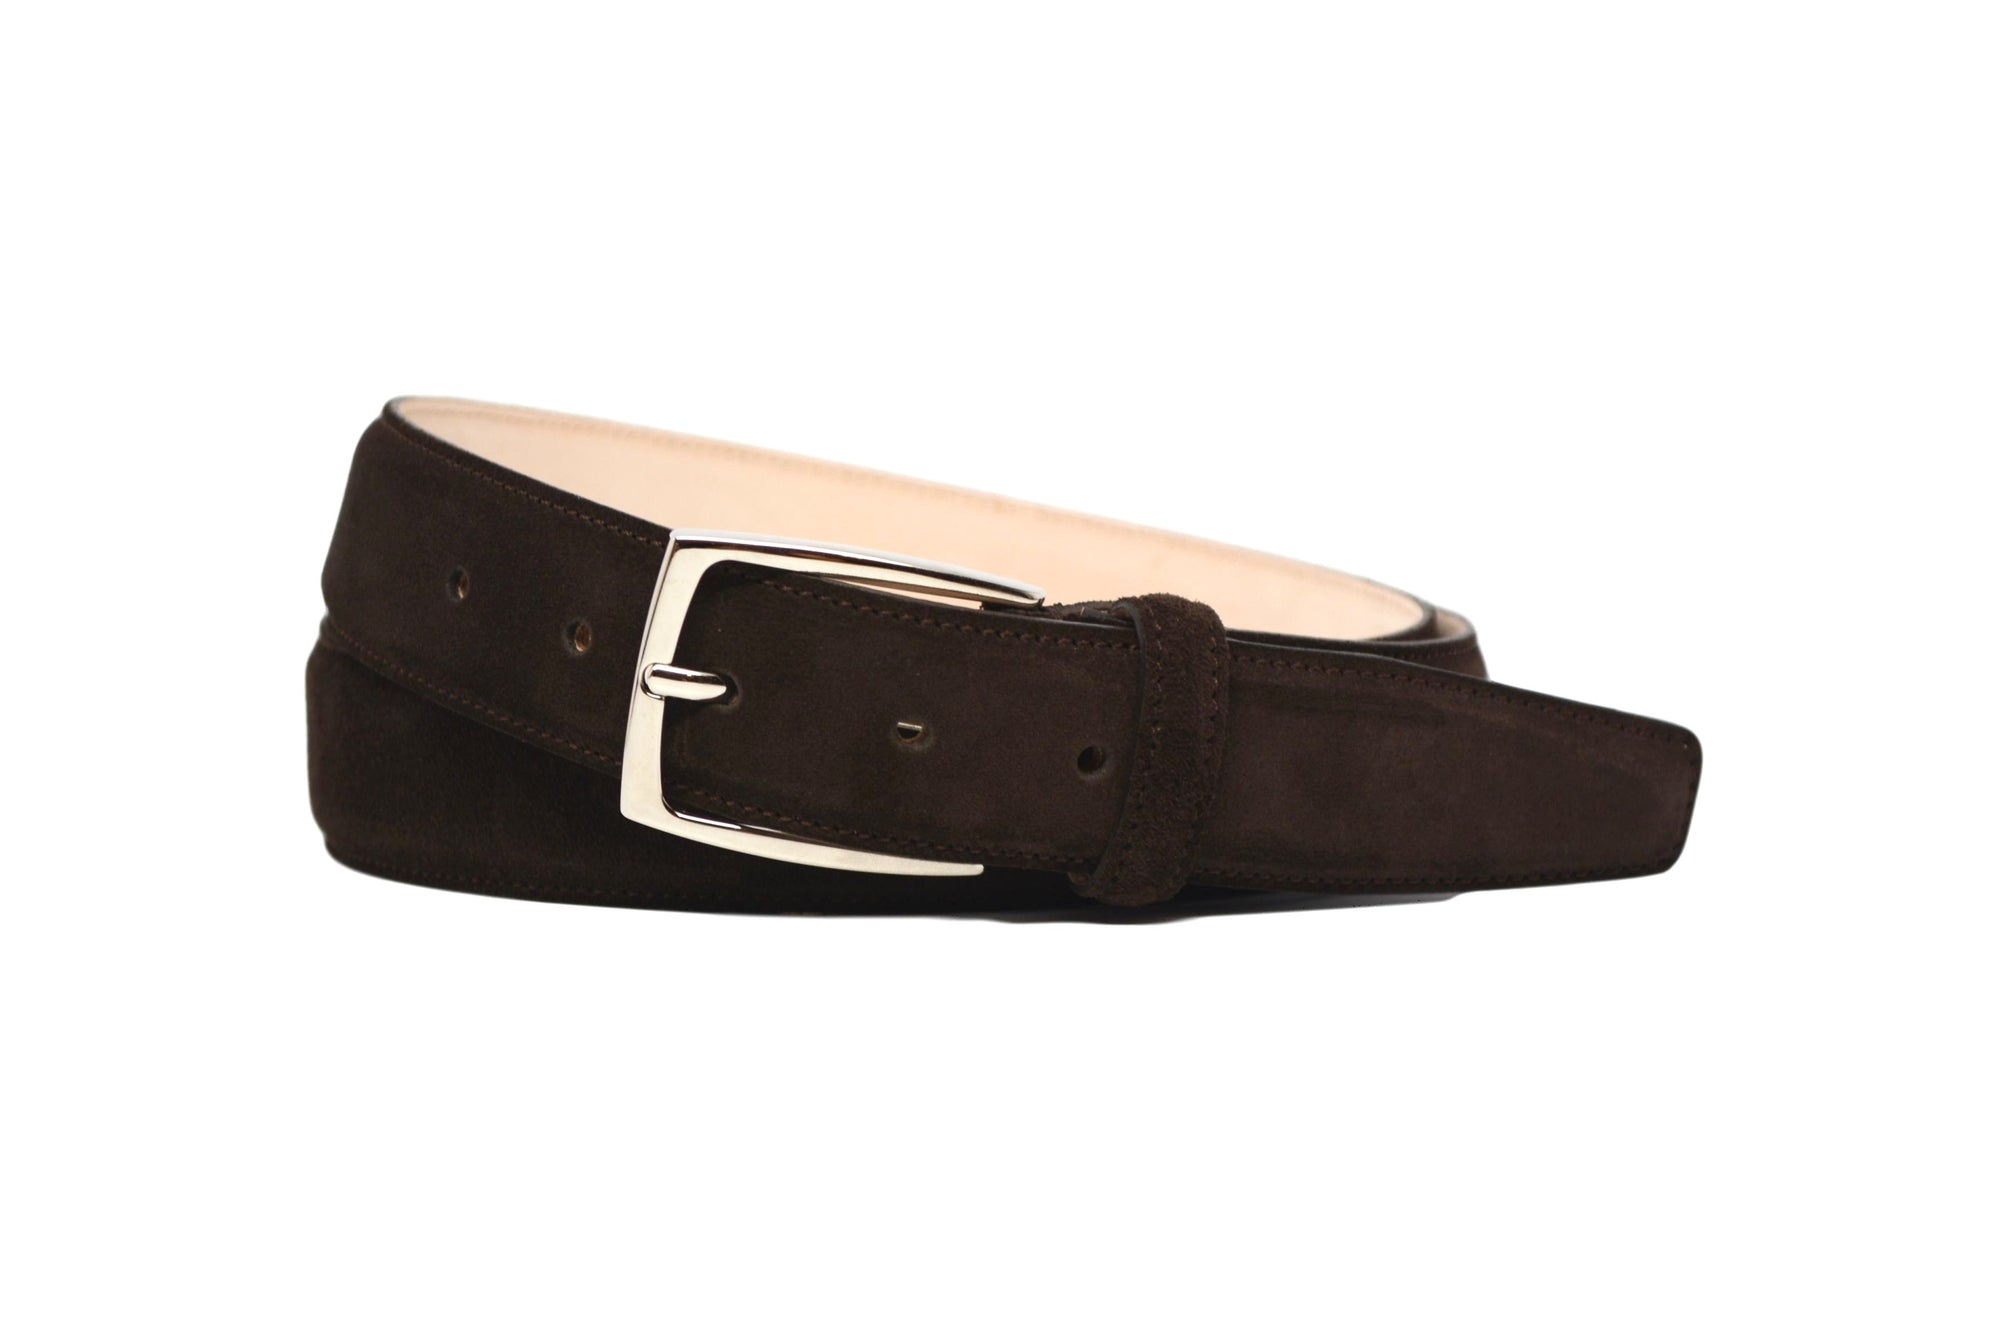 MATCHING BELT - BROWN SUEDE